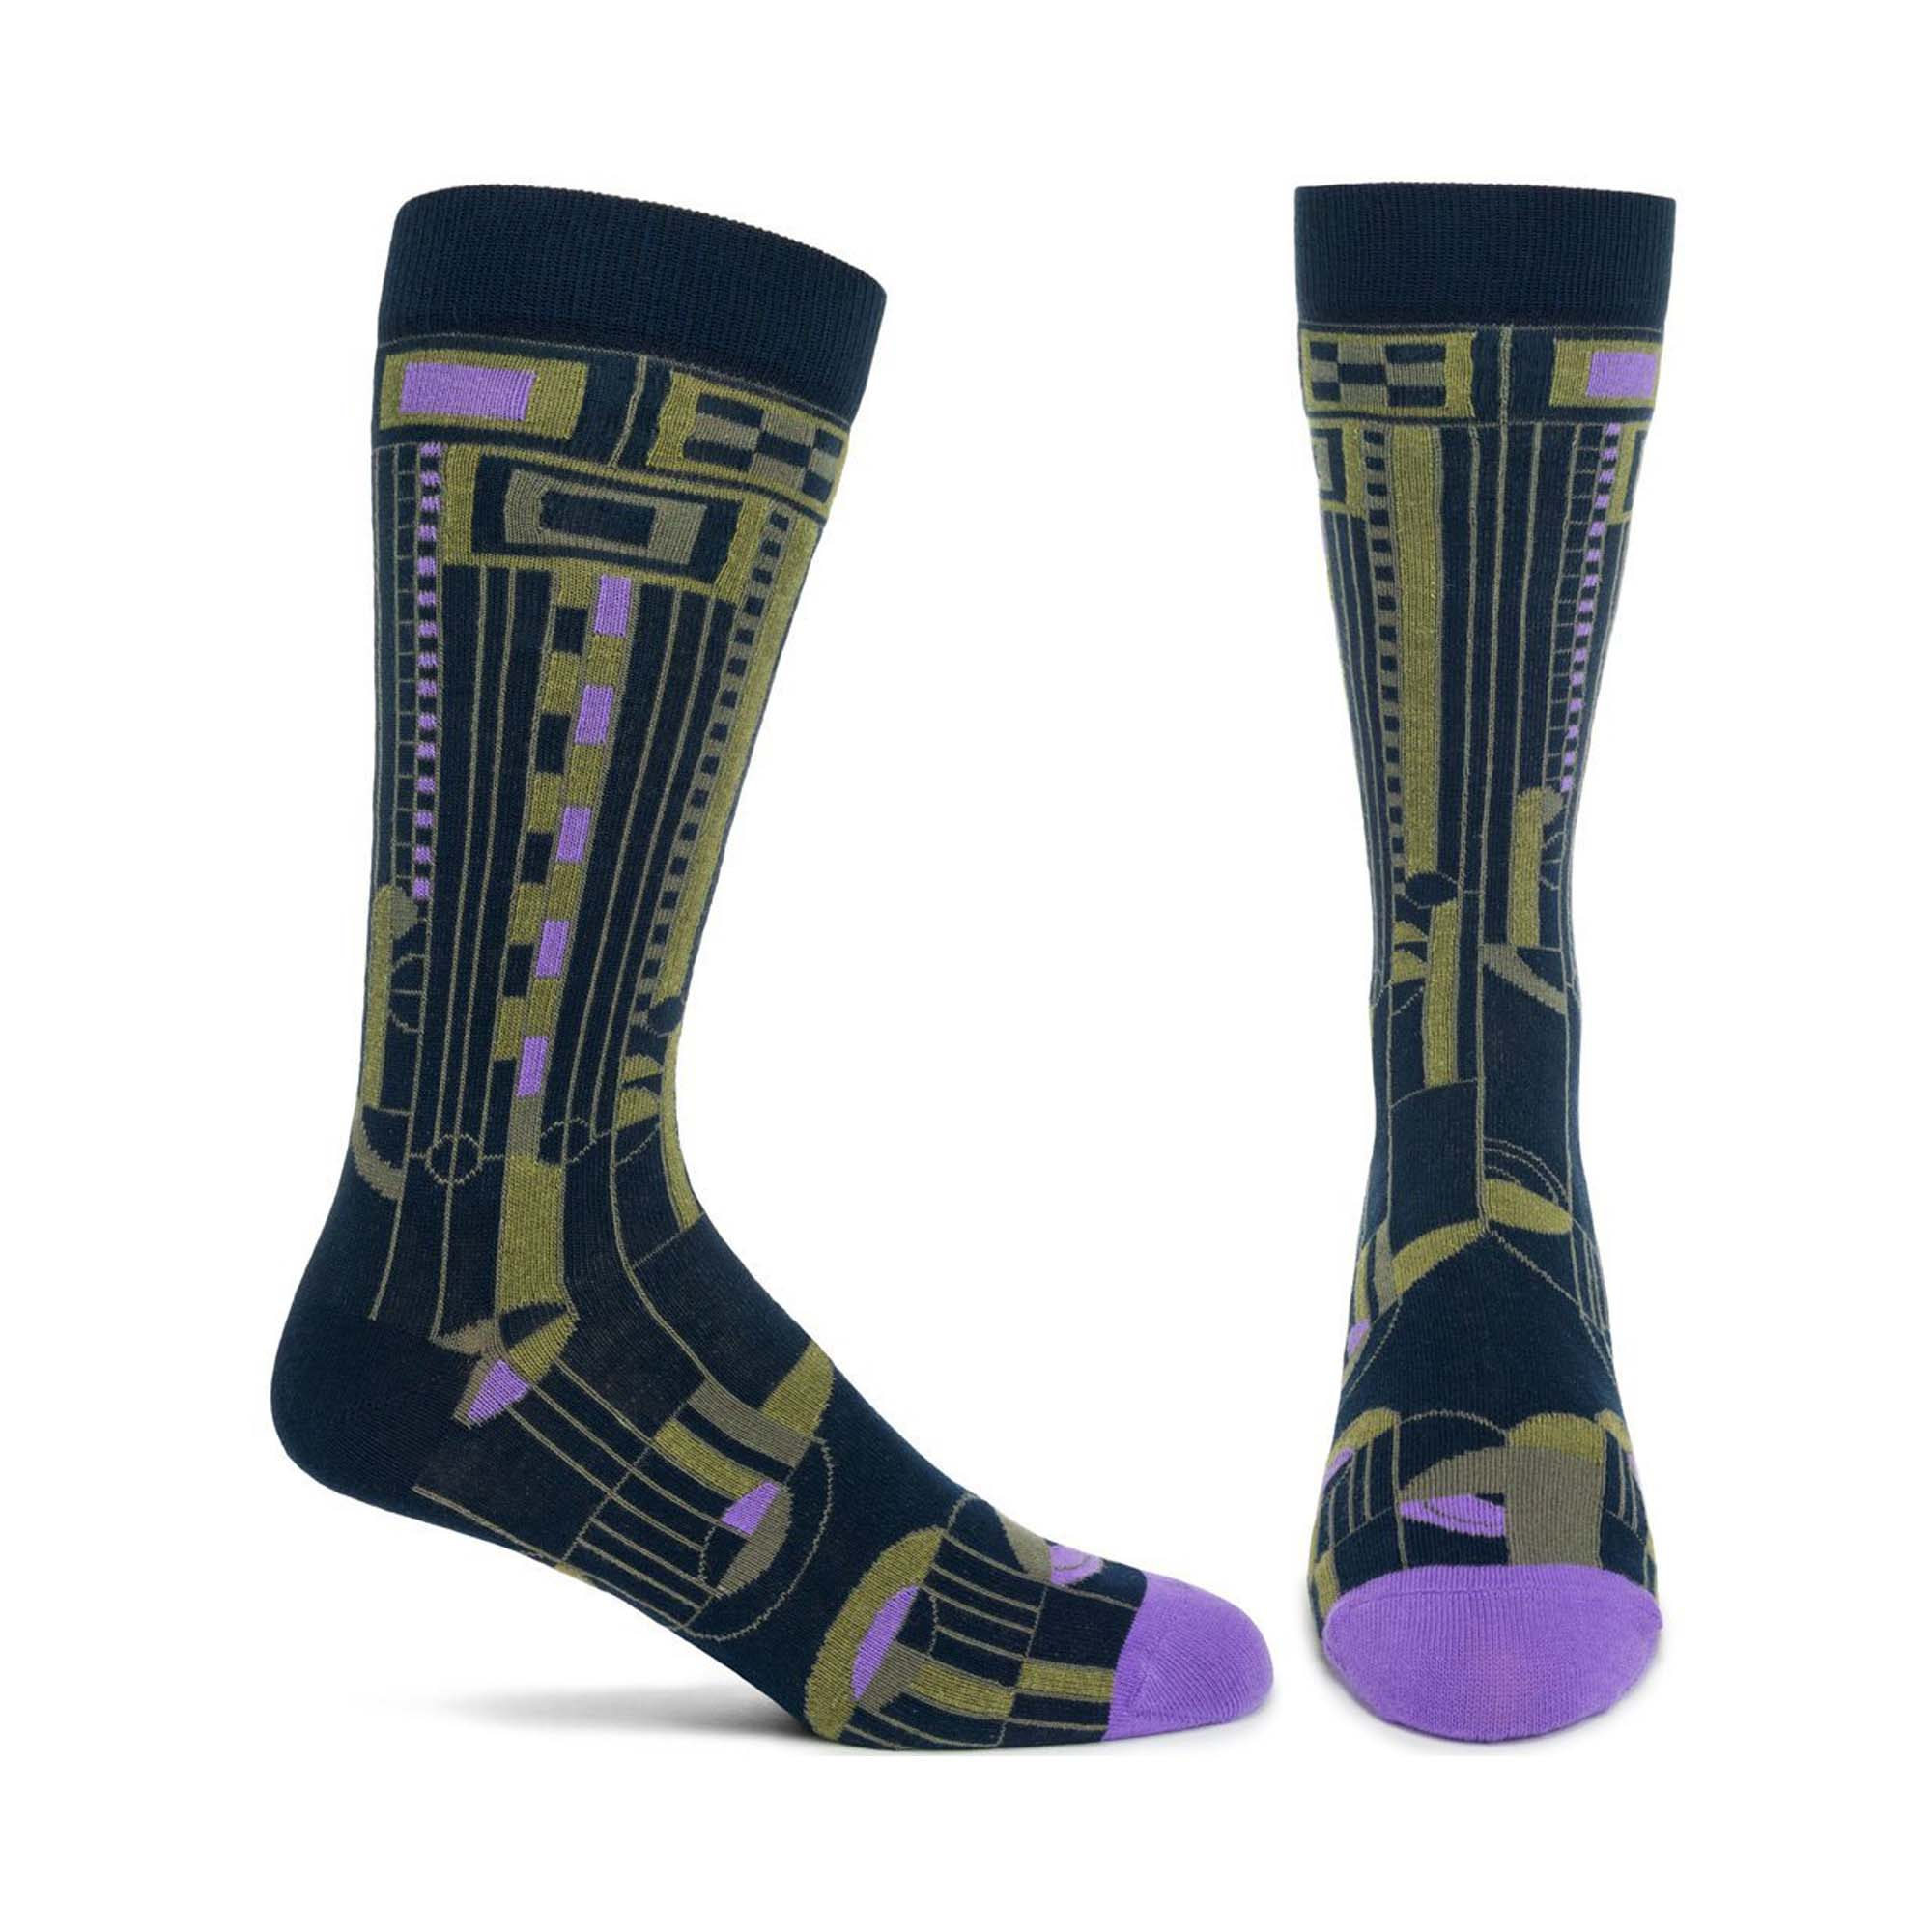 FLW - Saguaro 2 Sock - Ozone Design Inc